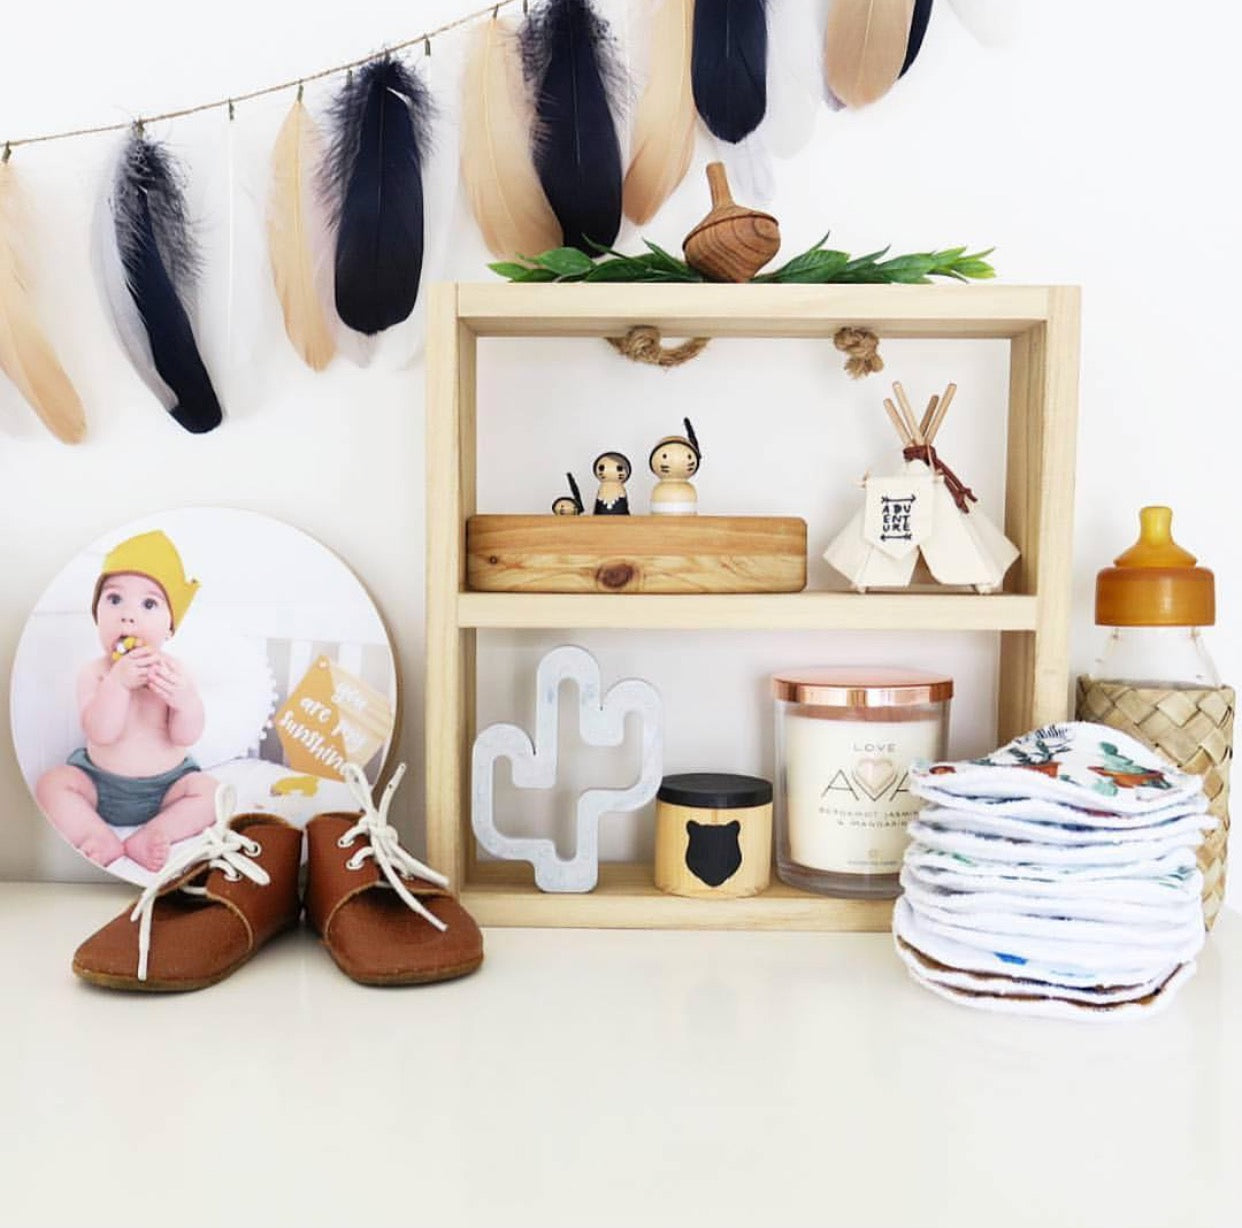 Organic Baby Gifts  Make A Thoughtful Addition To Any Nursery